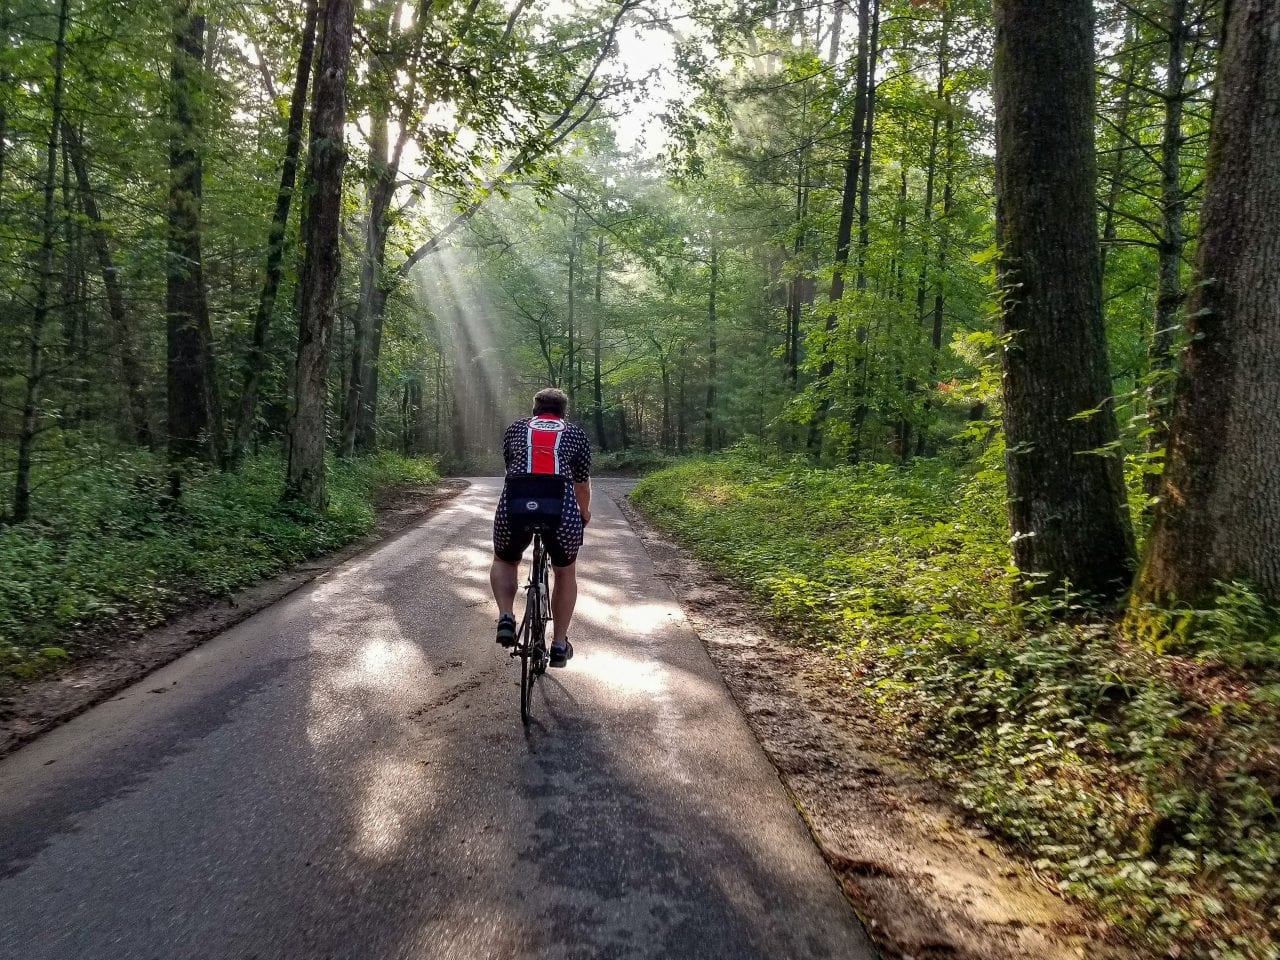 Biking Cades Cove with streaks of sunlight bursting through the trees